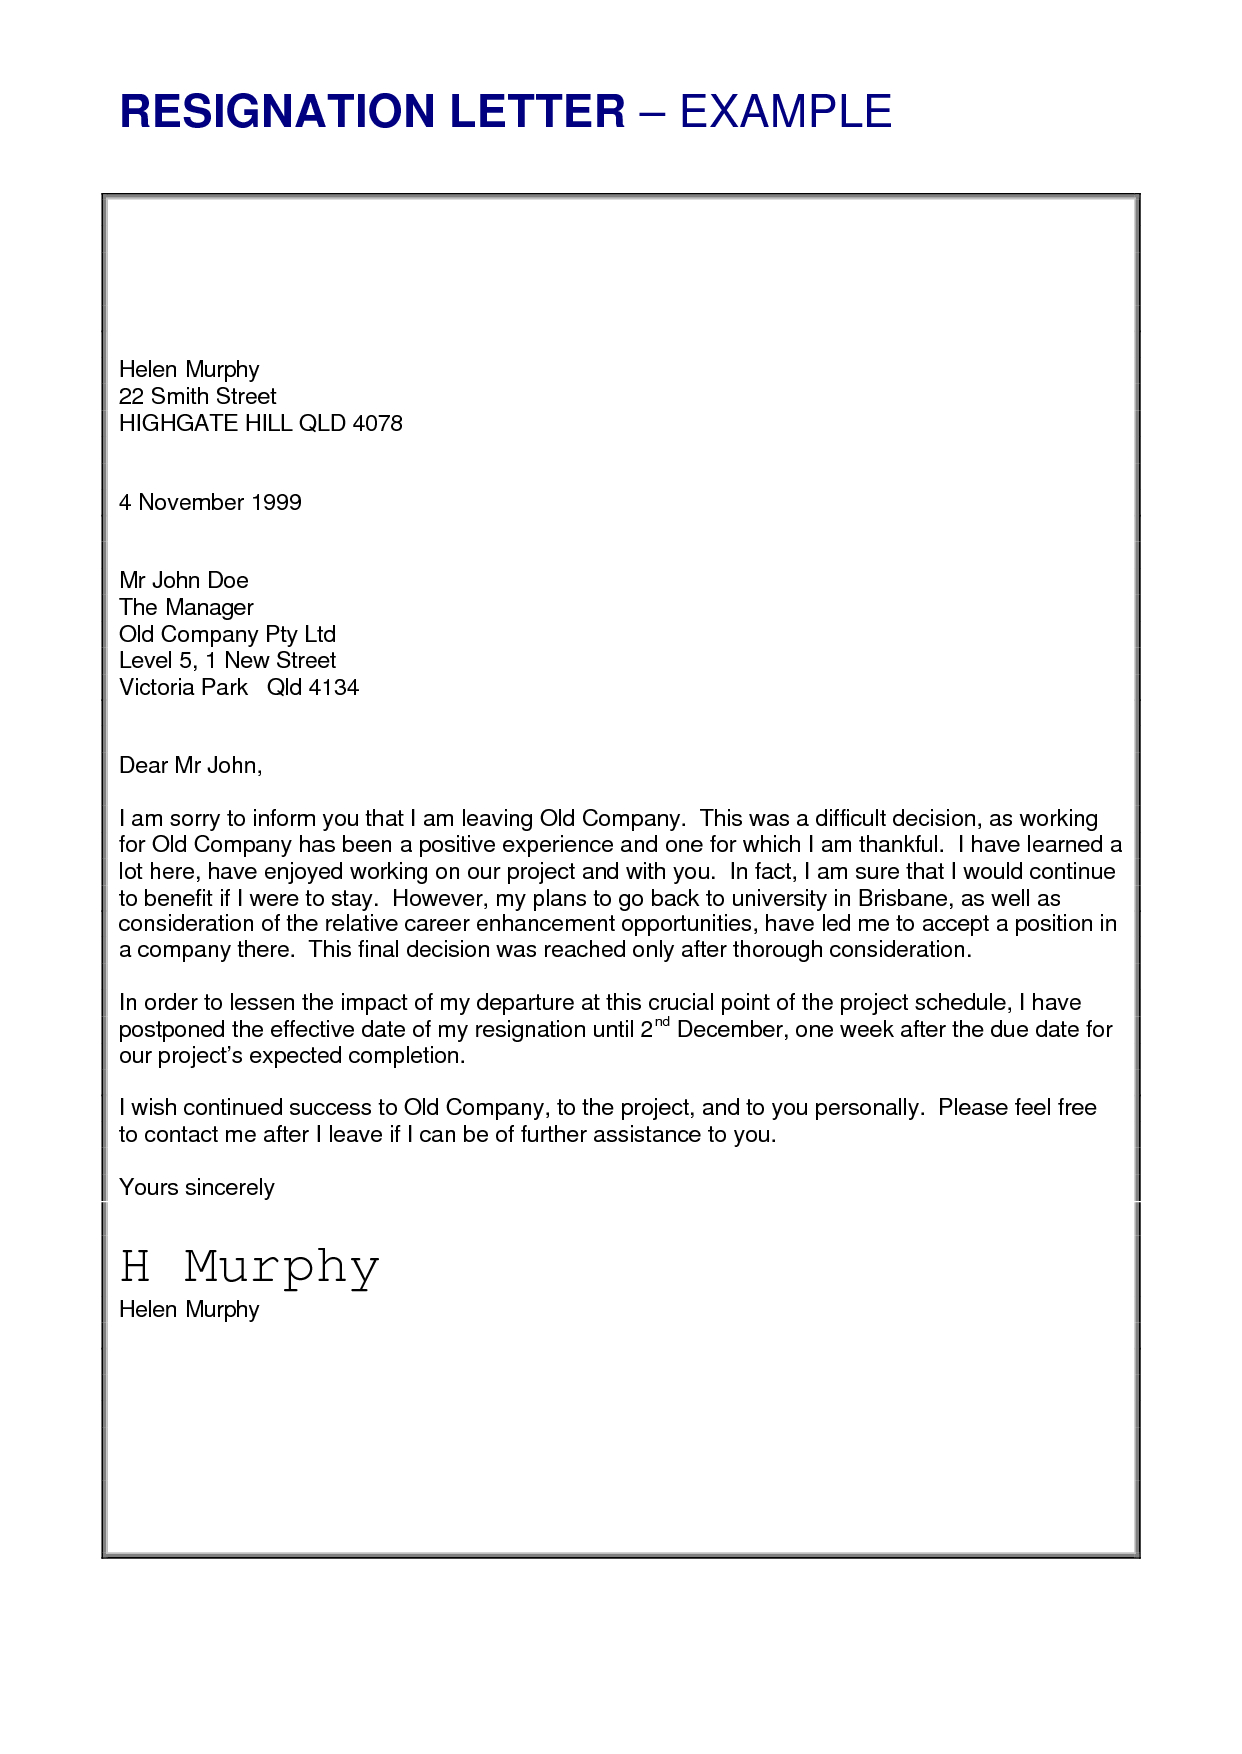 Resignation Letter format Template - Job Resignation Letter Sample Loganun Blog